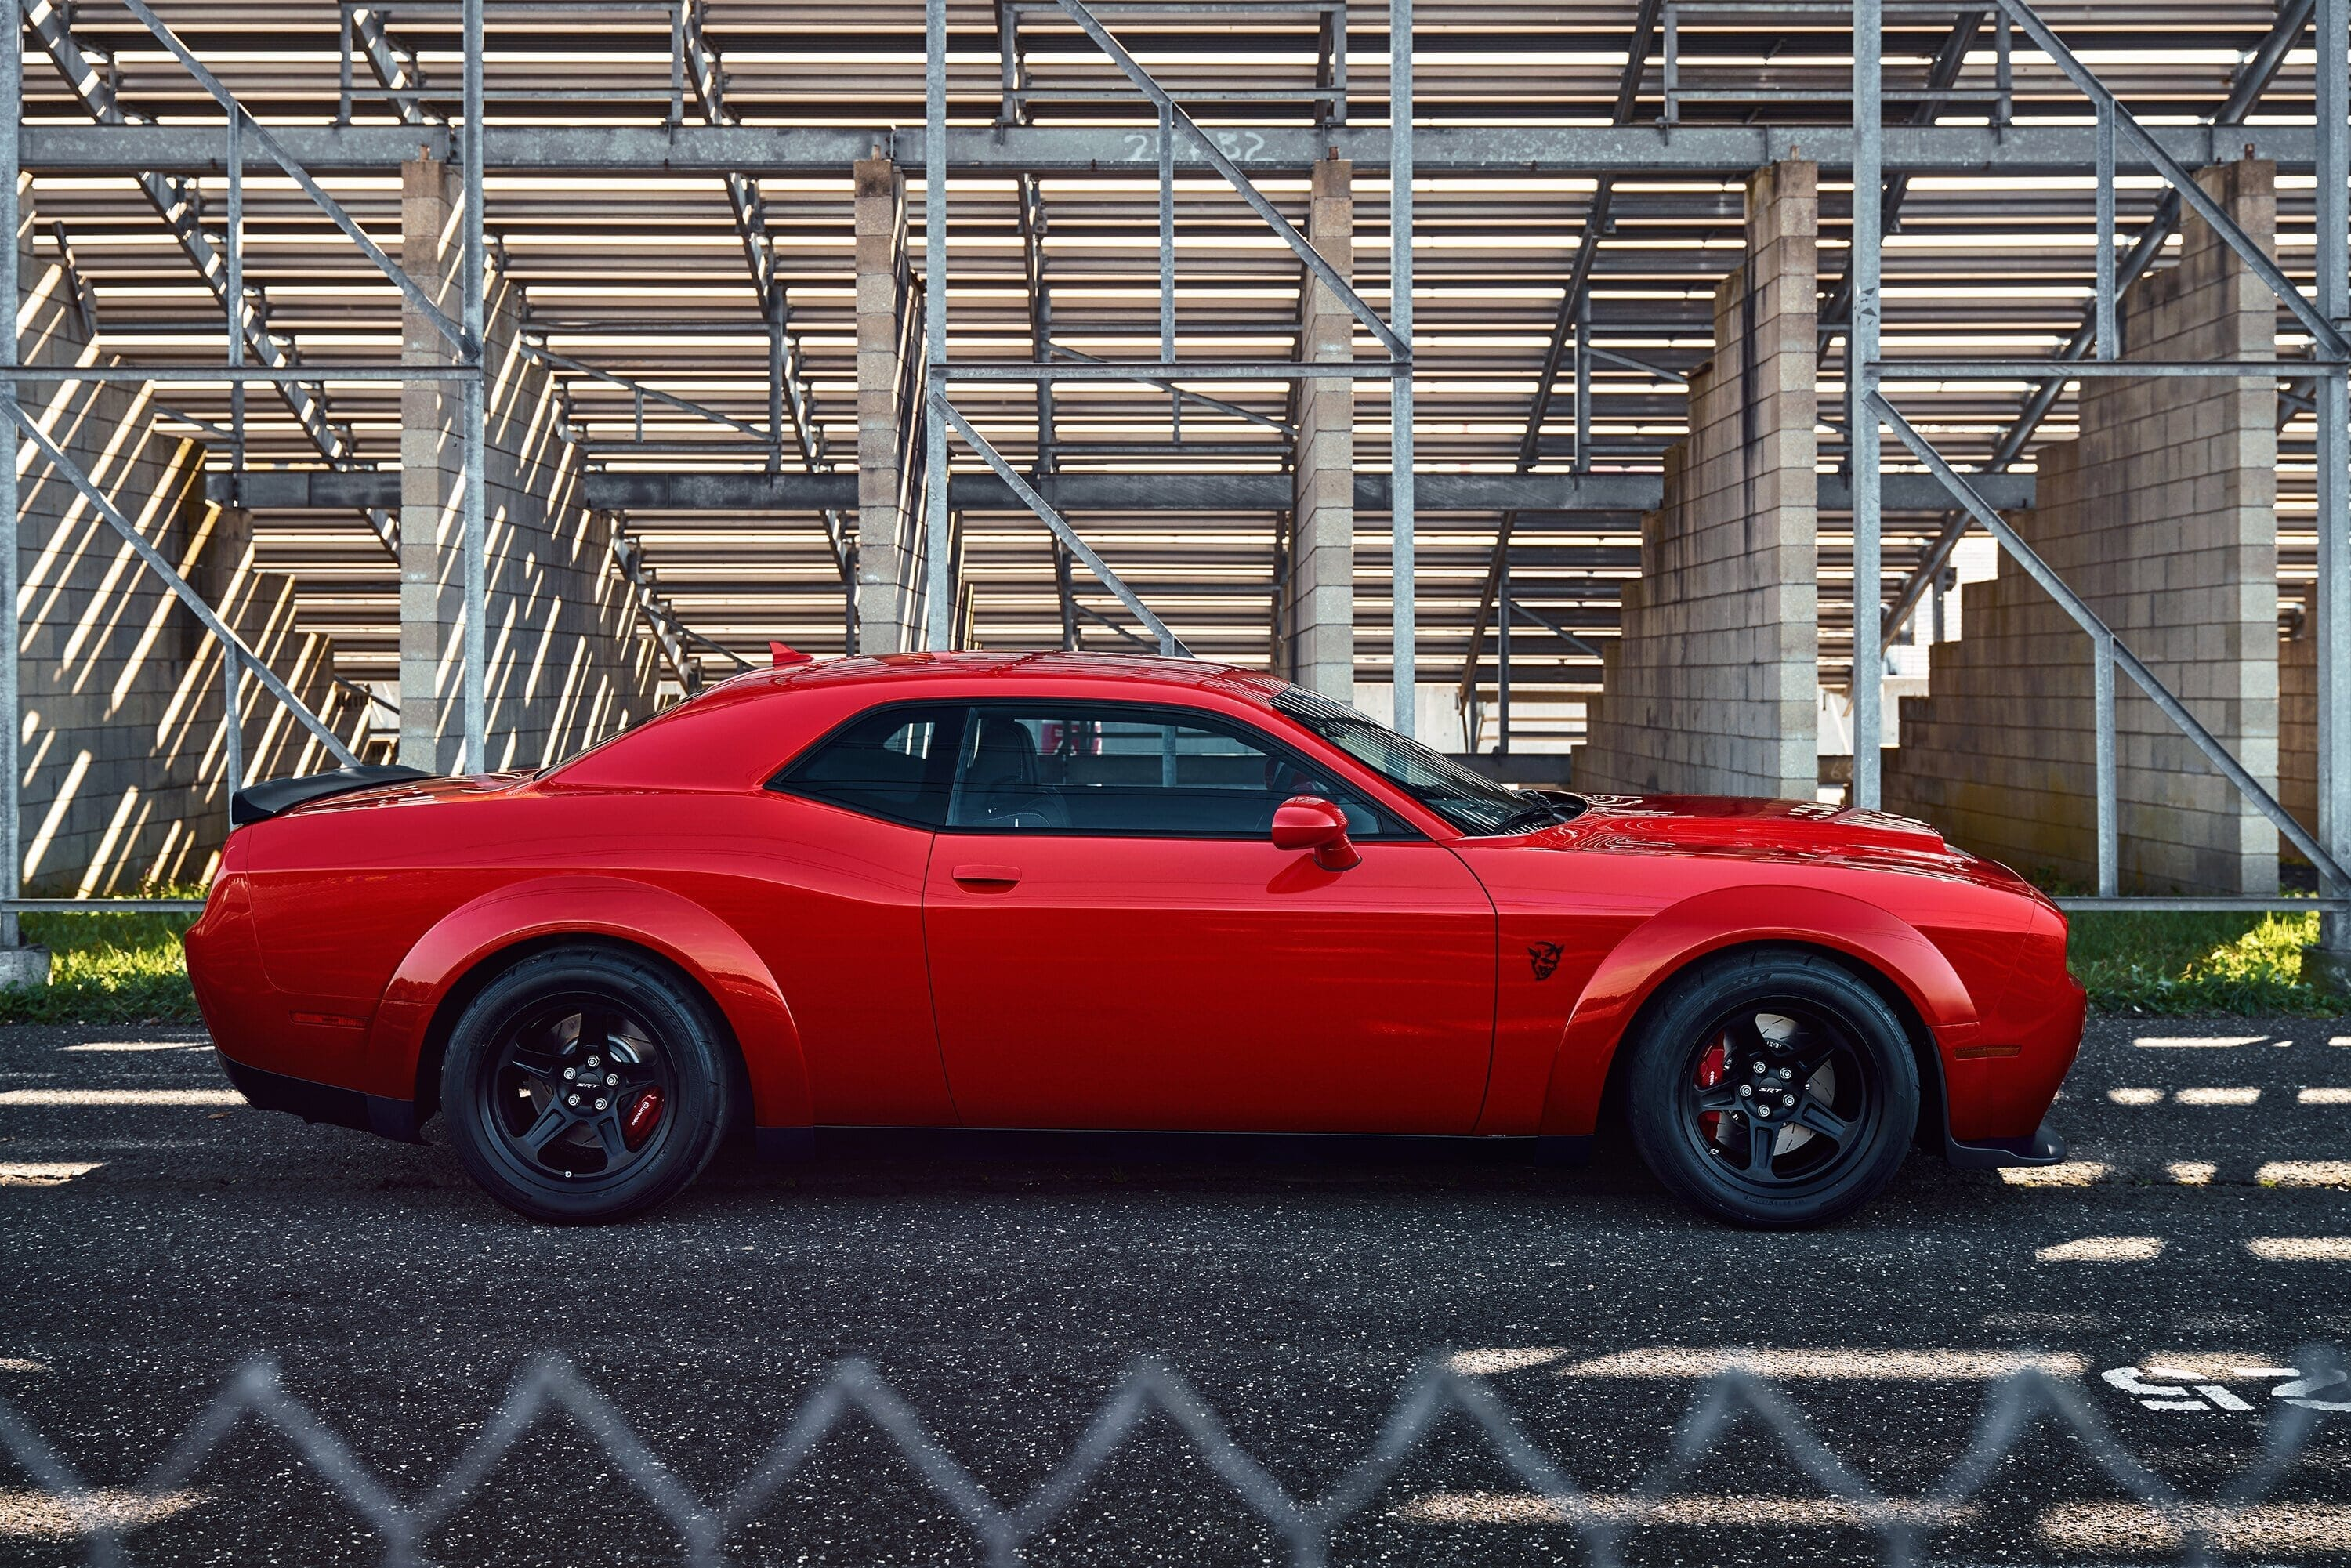 Read an article about the Dodge Challenger SRT Demon